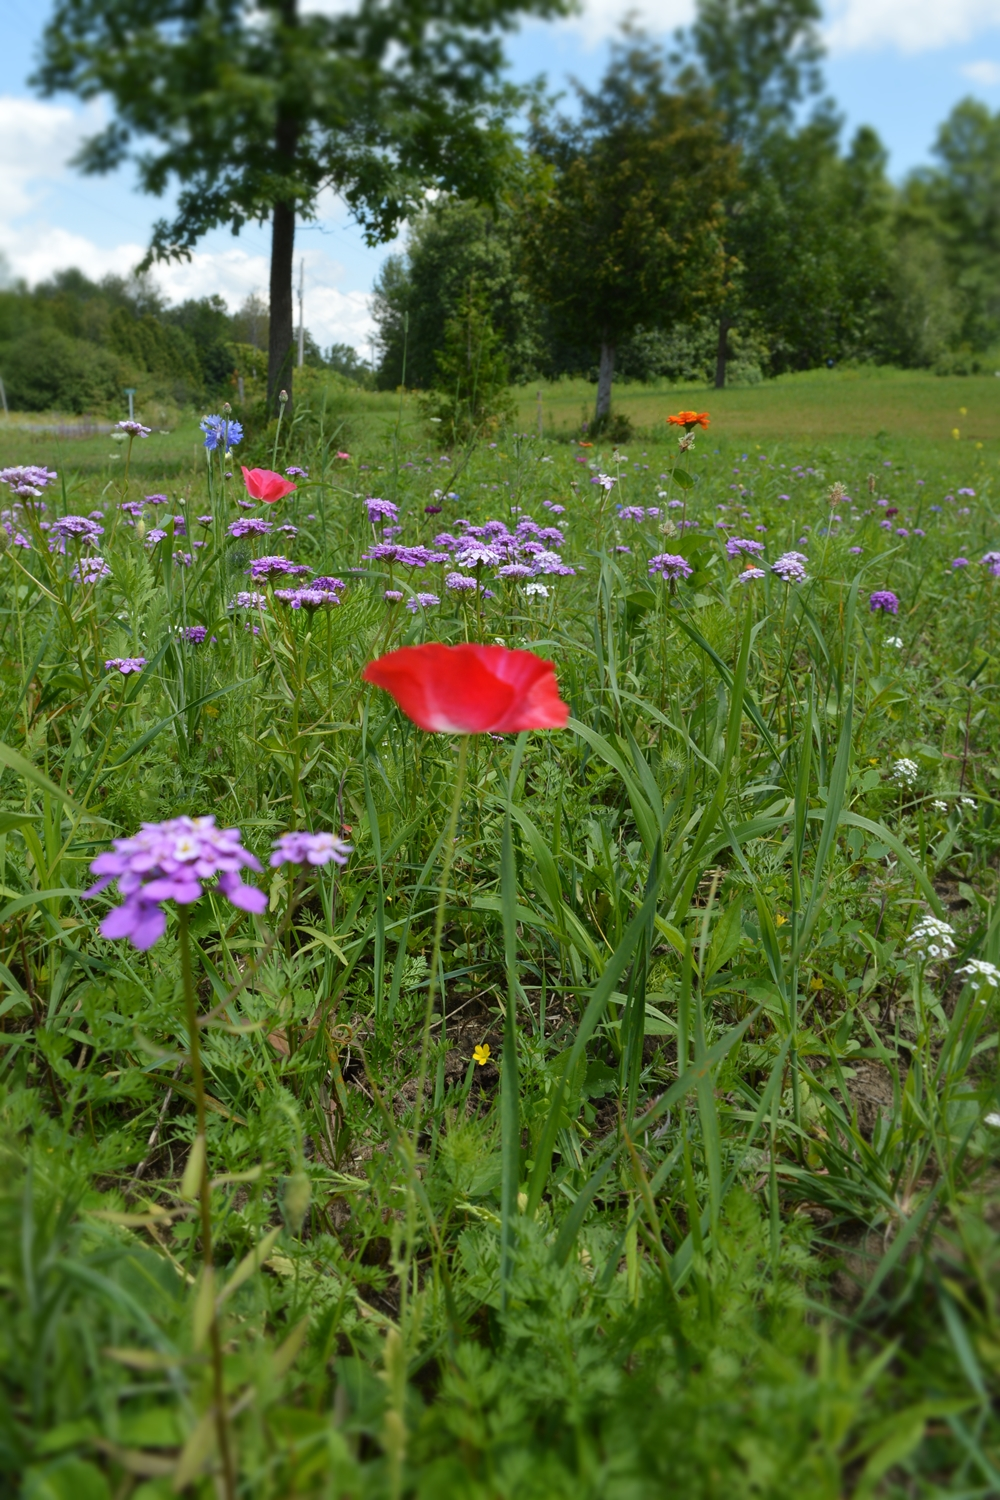 My experiences growing a wildflower meadow